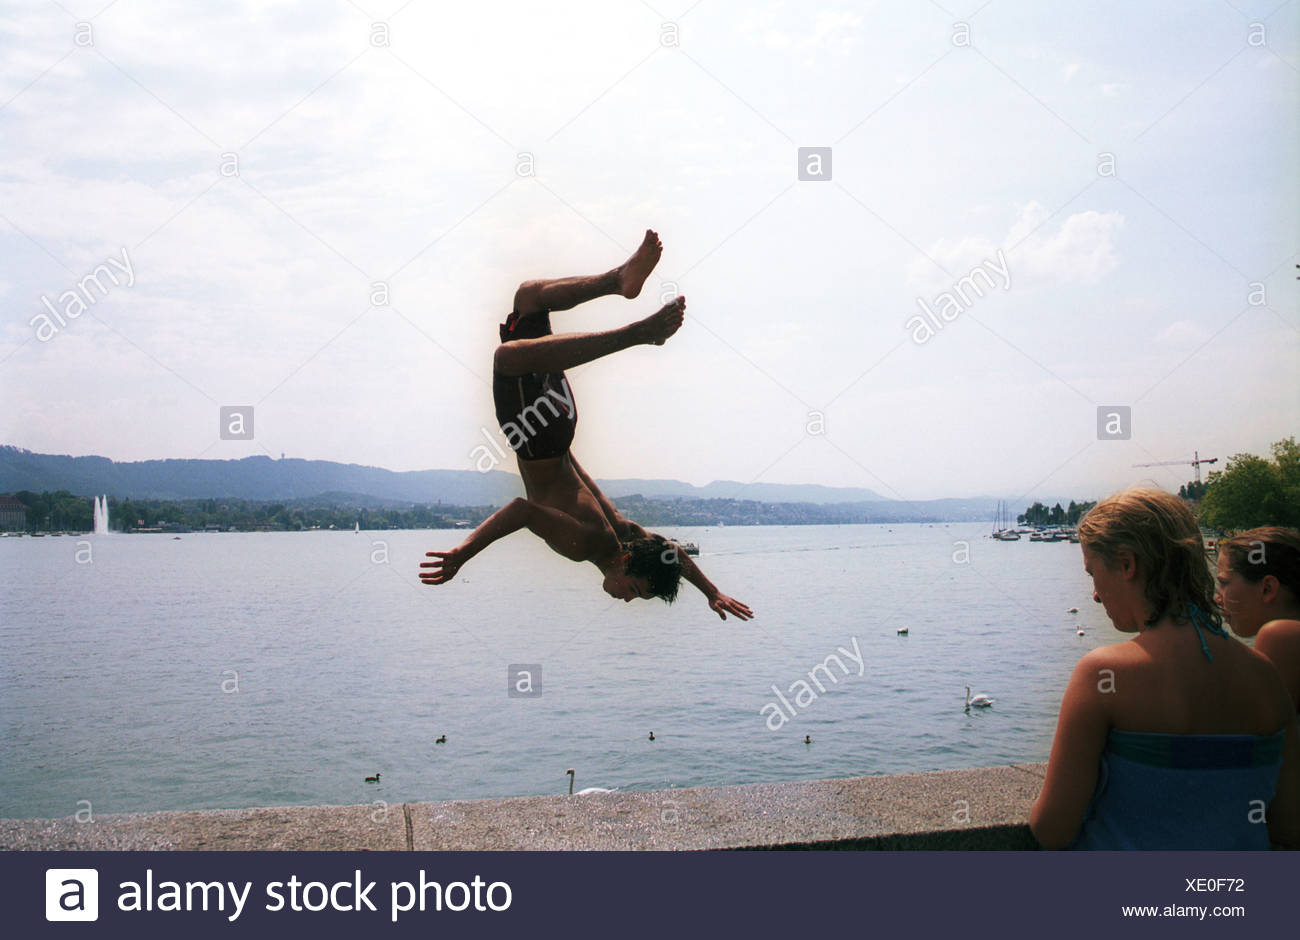 Boy jumps from Quaibrücke in Zuerichsee - Stock Image